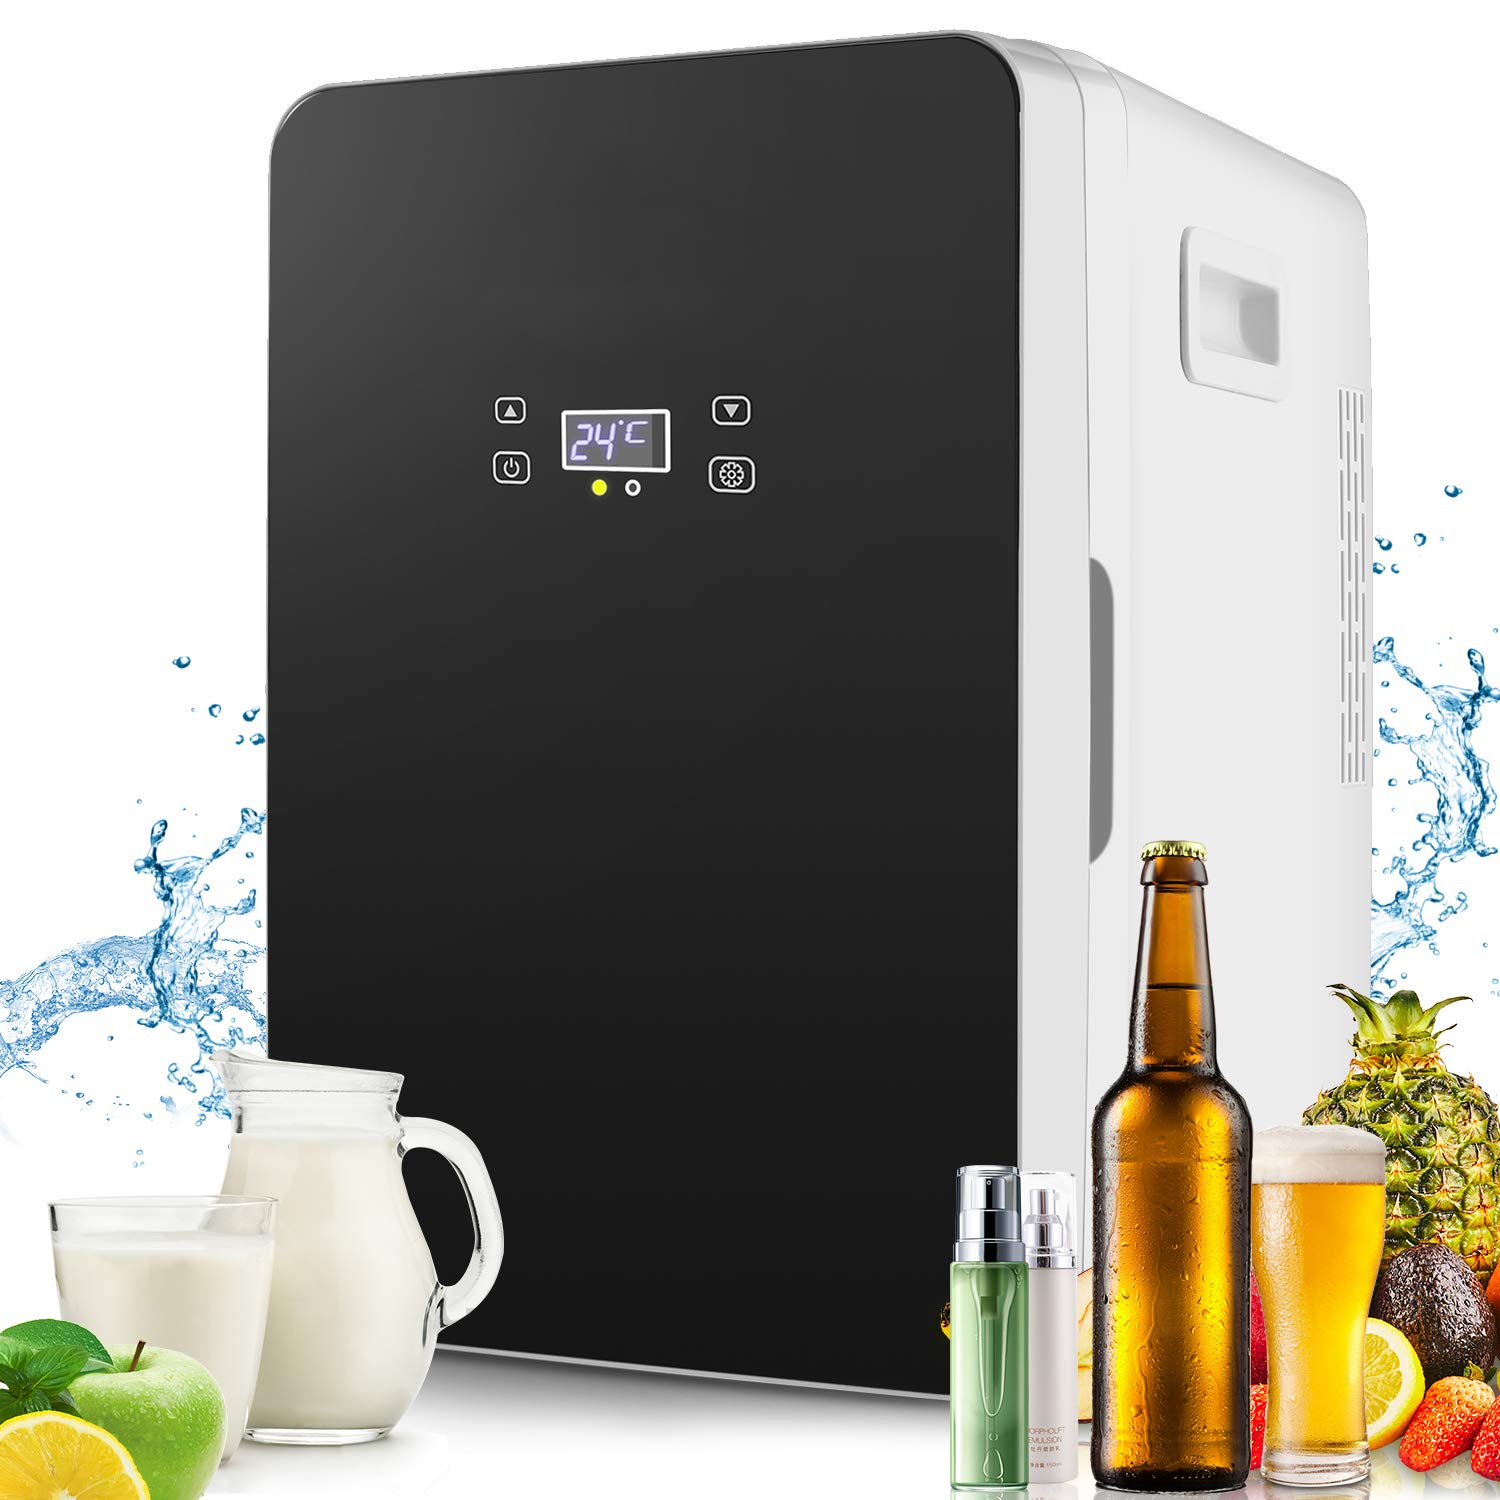 Compact Fridge Electric Cooler and Warmer(20 Liter), AC/DC Portable Refrigerator, Energy Star Single Door freezer(With Digital Display)